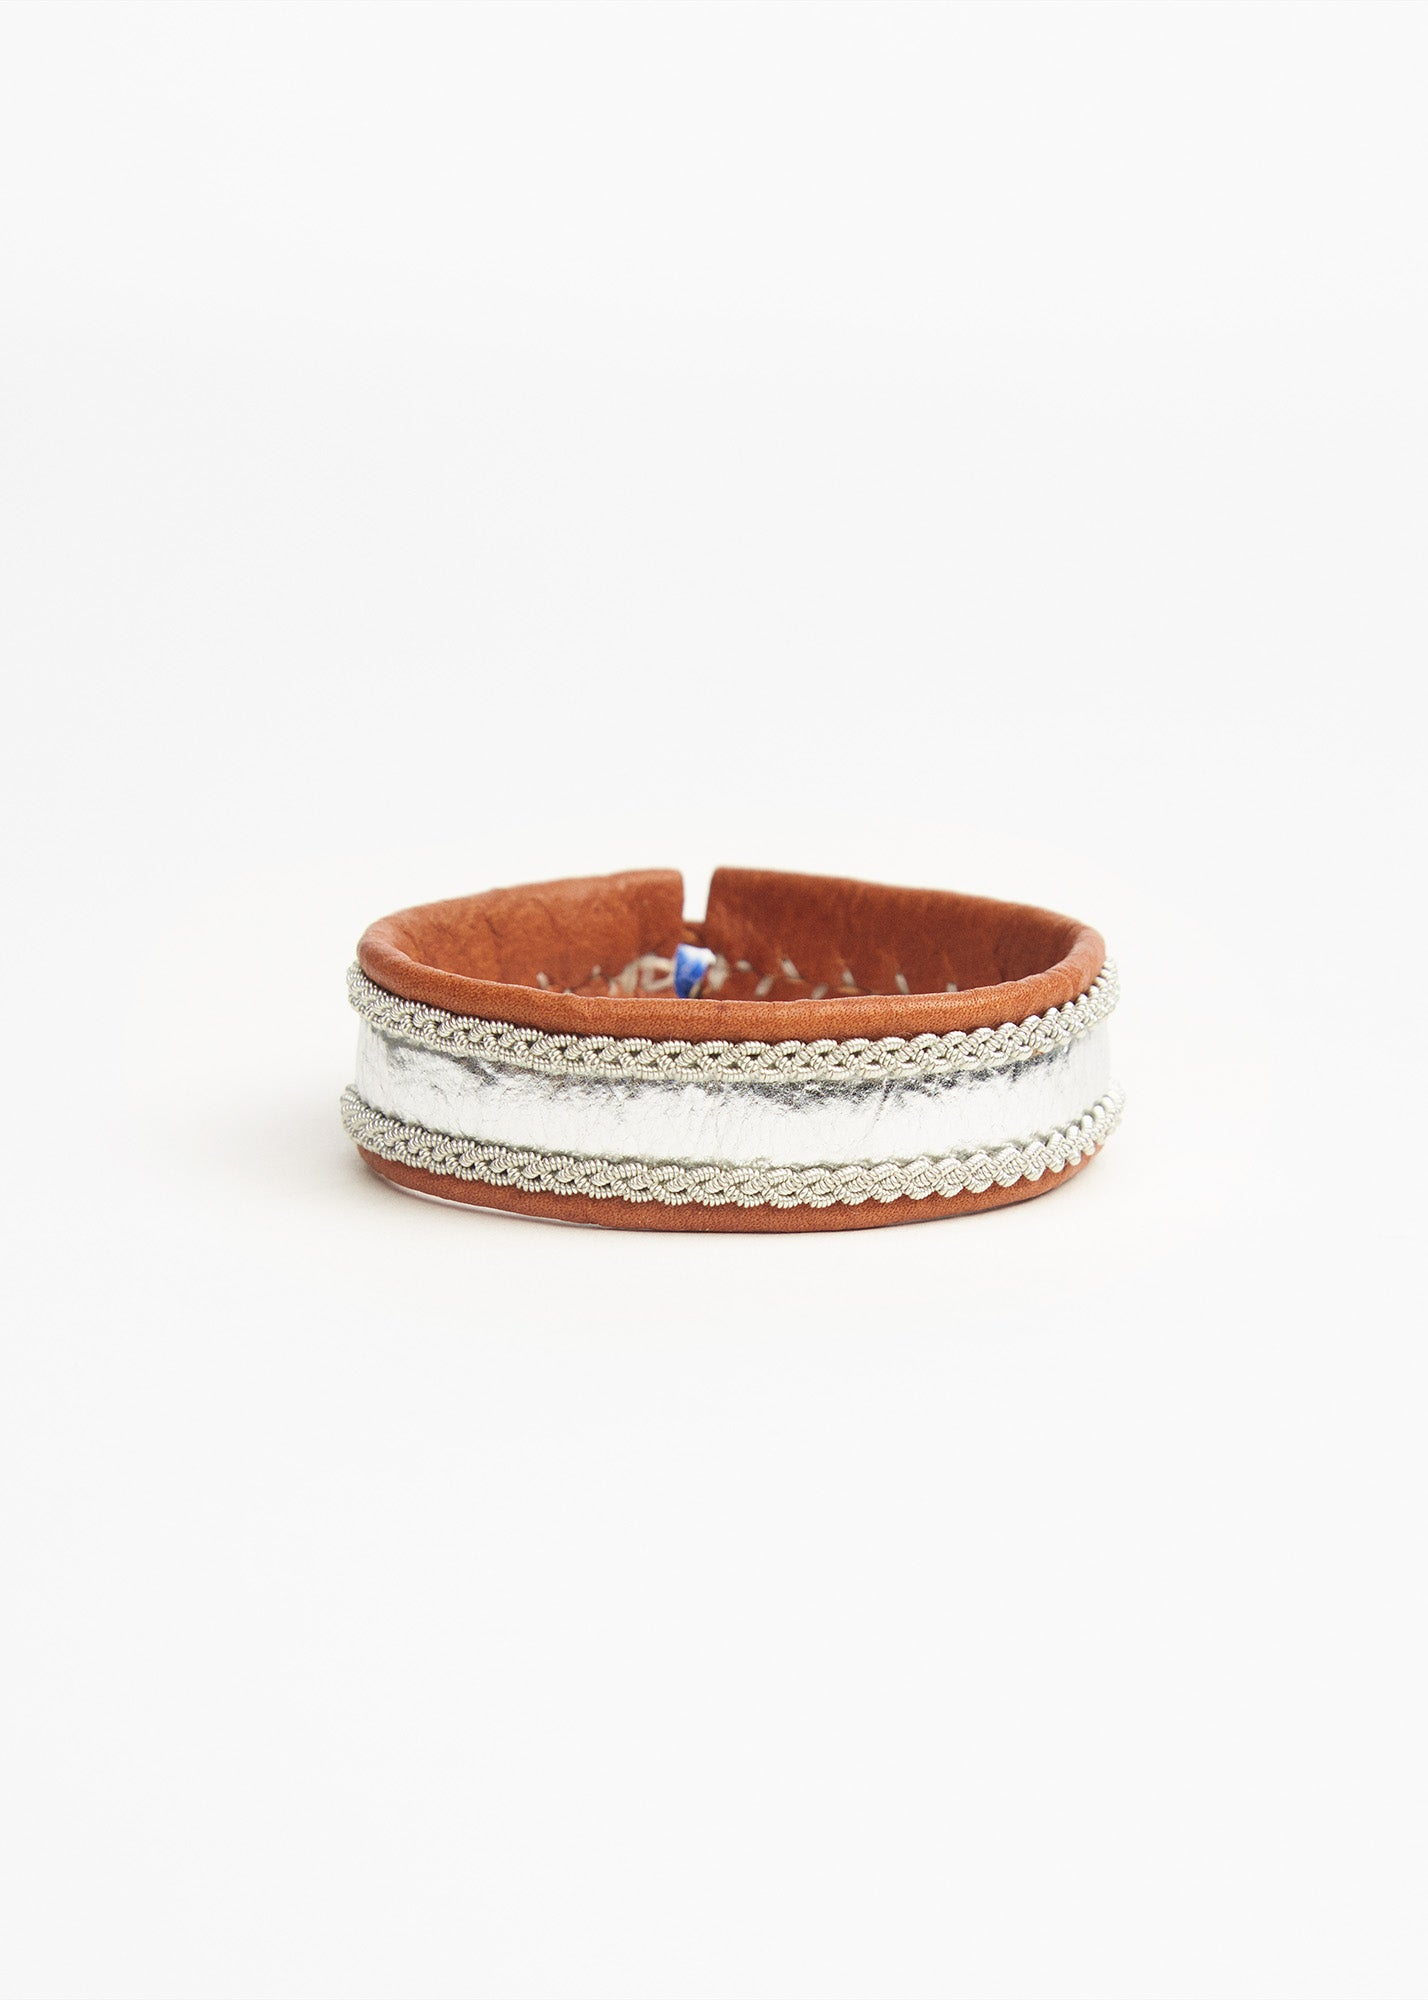 Leather Bracelet Tan/ Silver